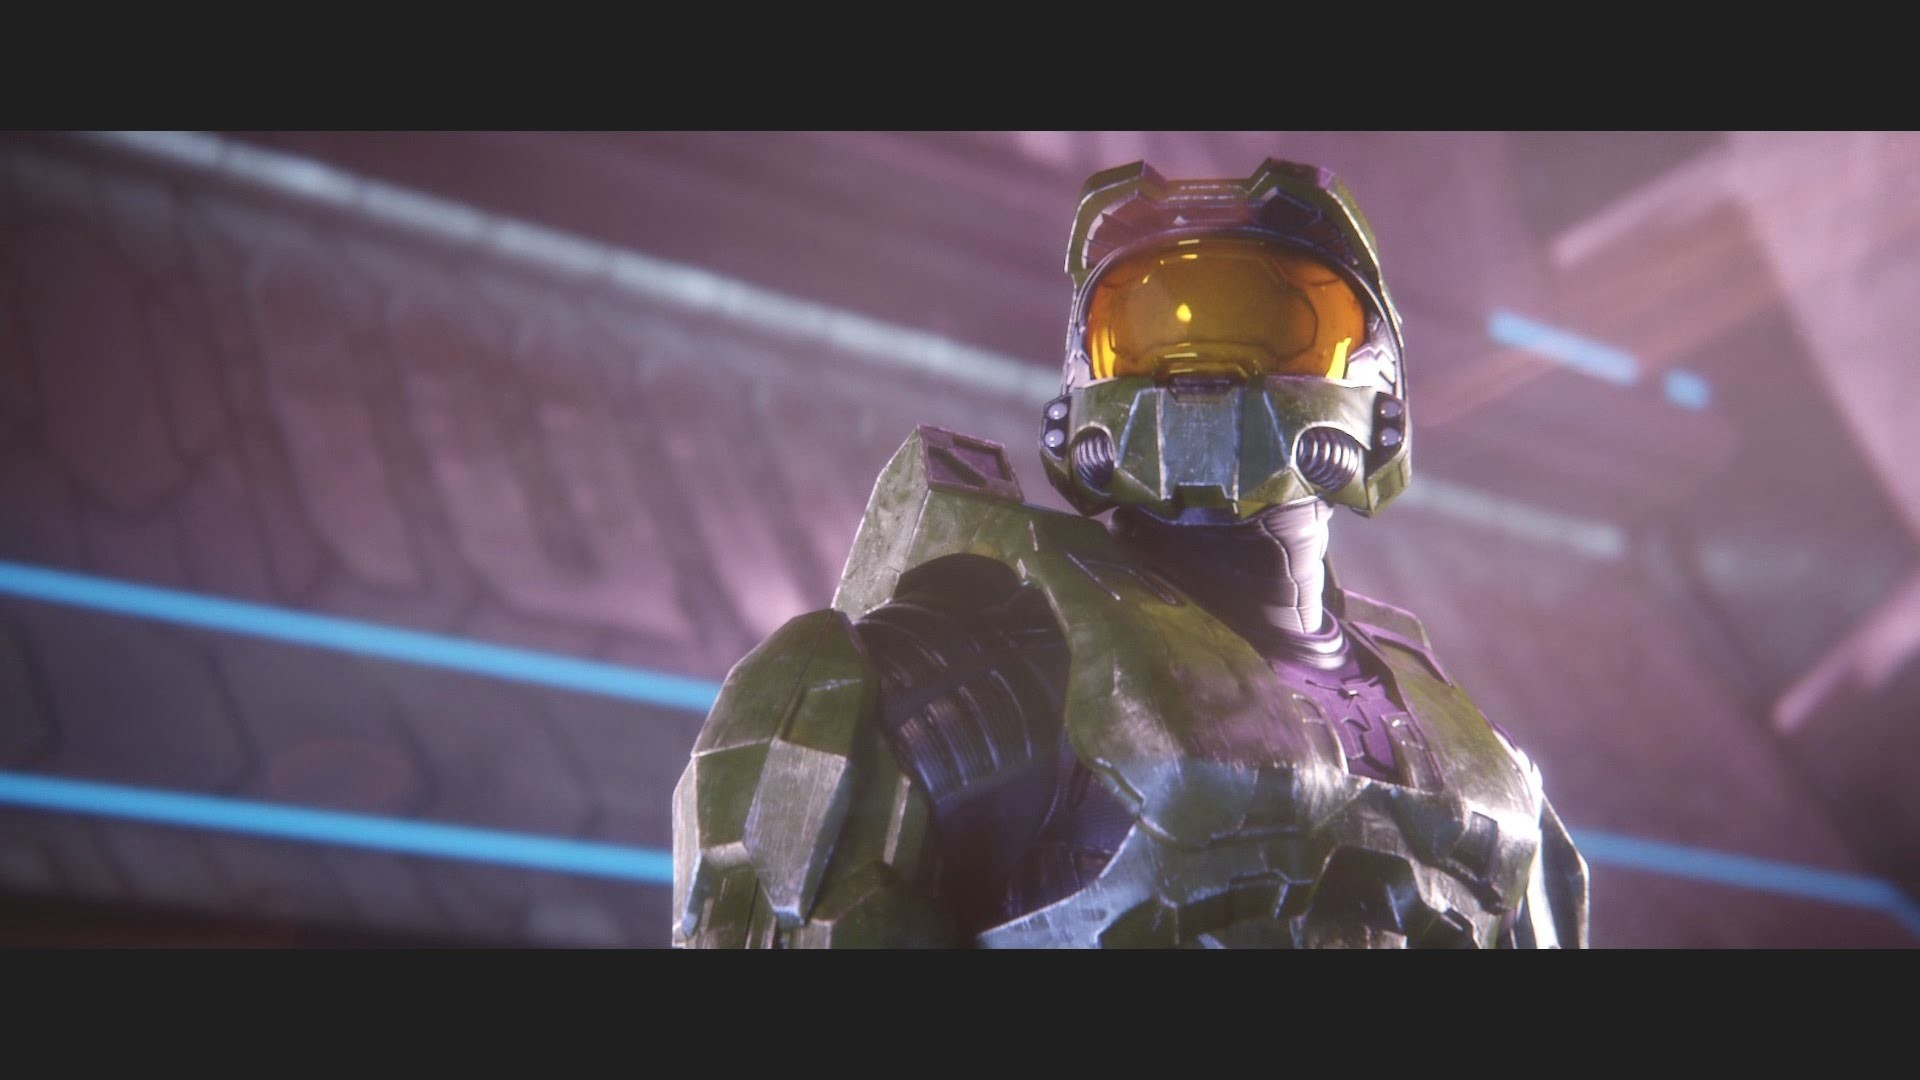 Master Chief Halo 2 Anniversary Cutscenes Remastered by Blur Studios [1080p  @ 60fps] – YouTube